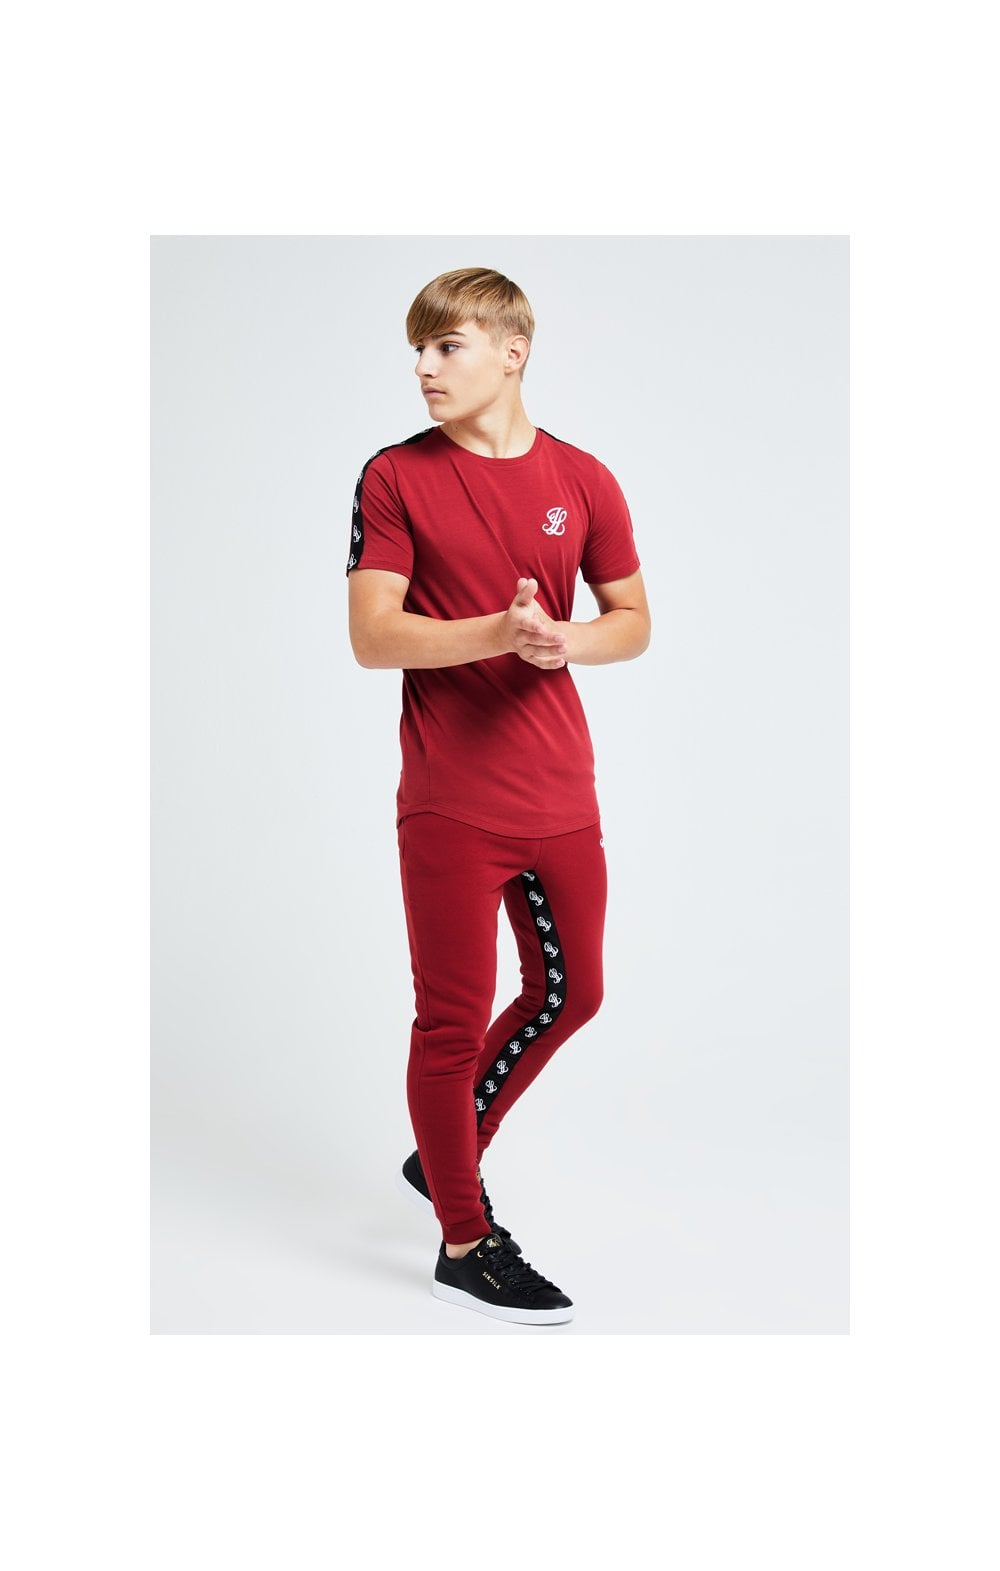 Illusive London Gravity Tape Tee - Red (3)